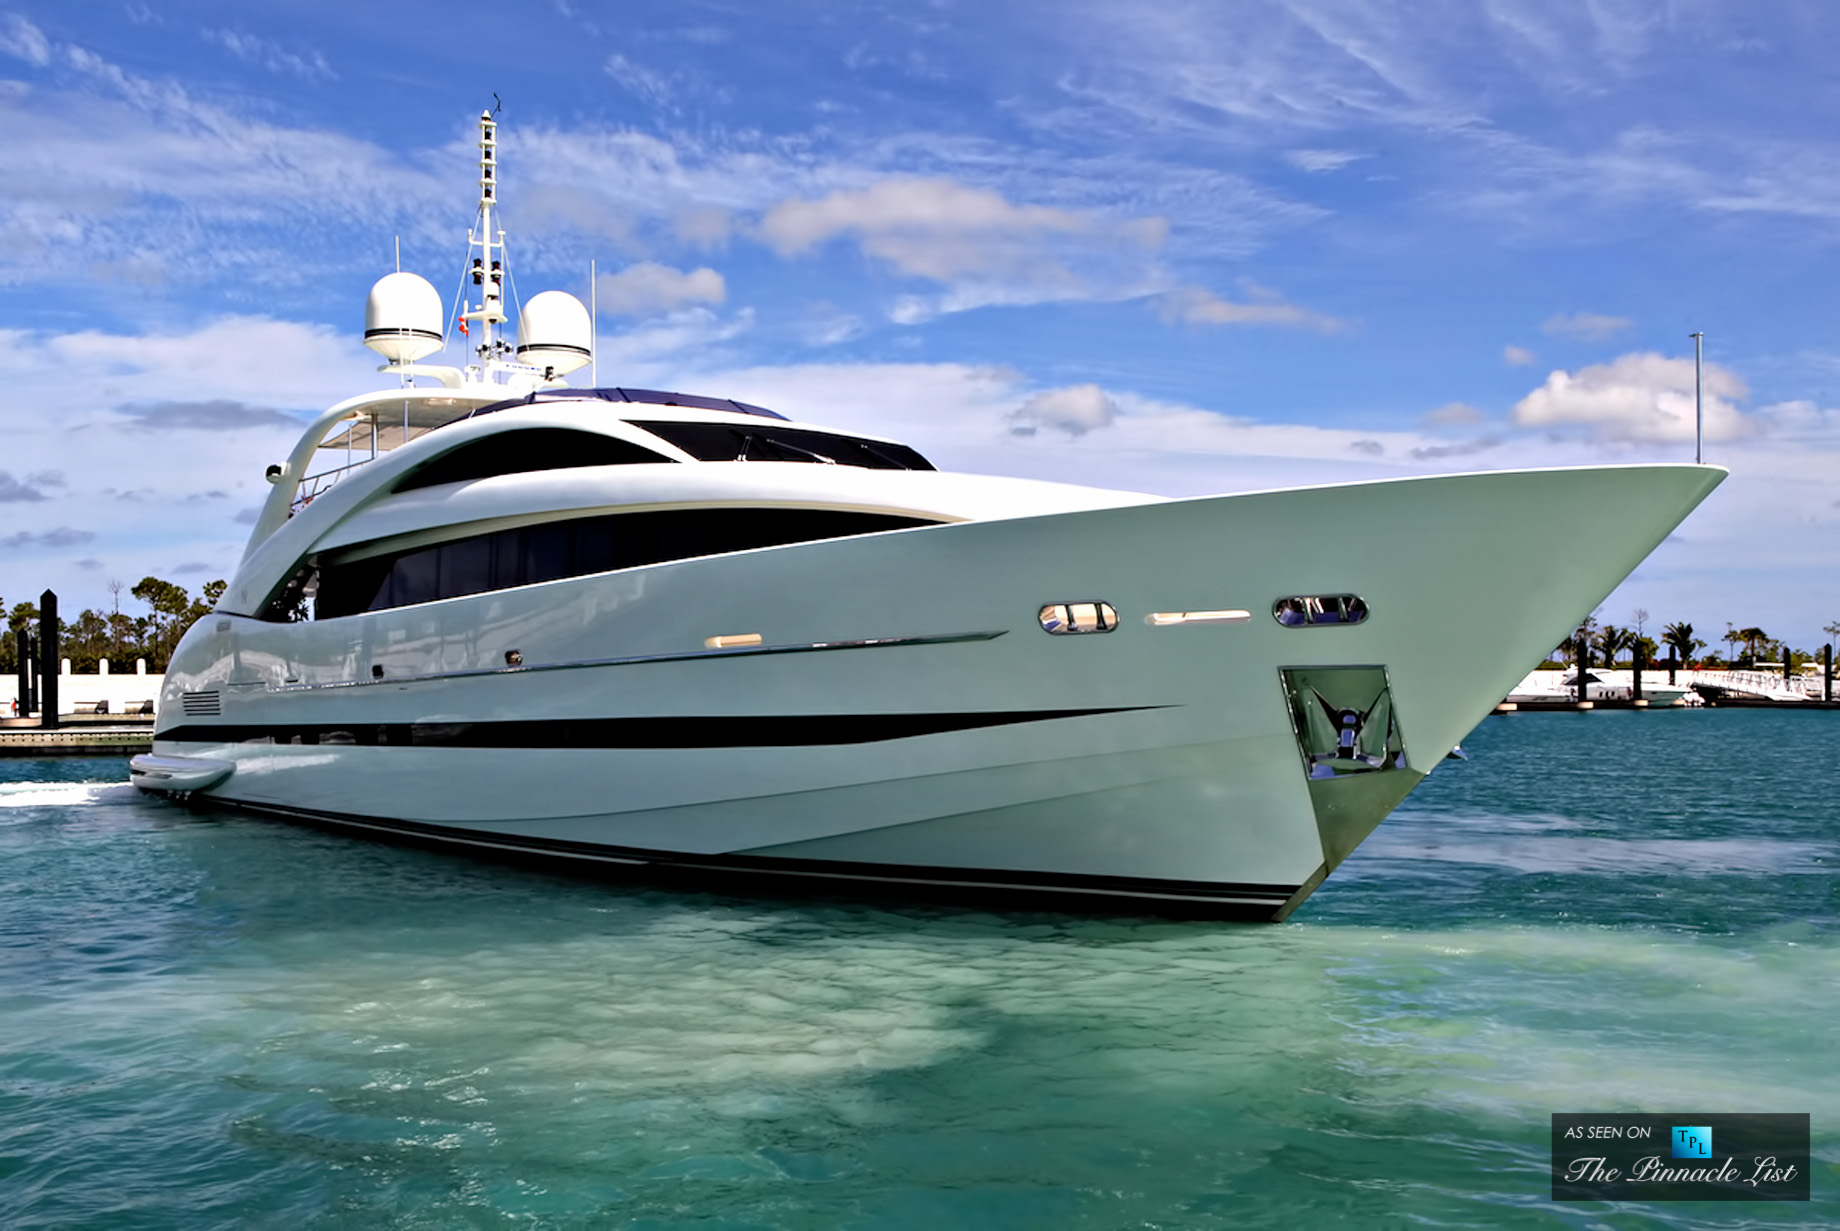 Sealyon Superyacht – Charter Availability for Caribbean and South Pacific